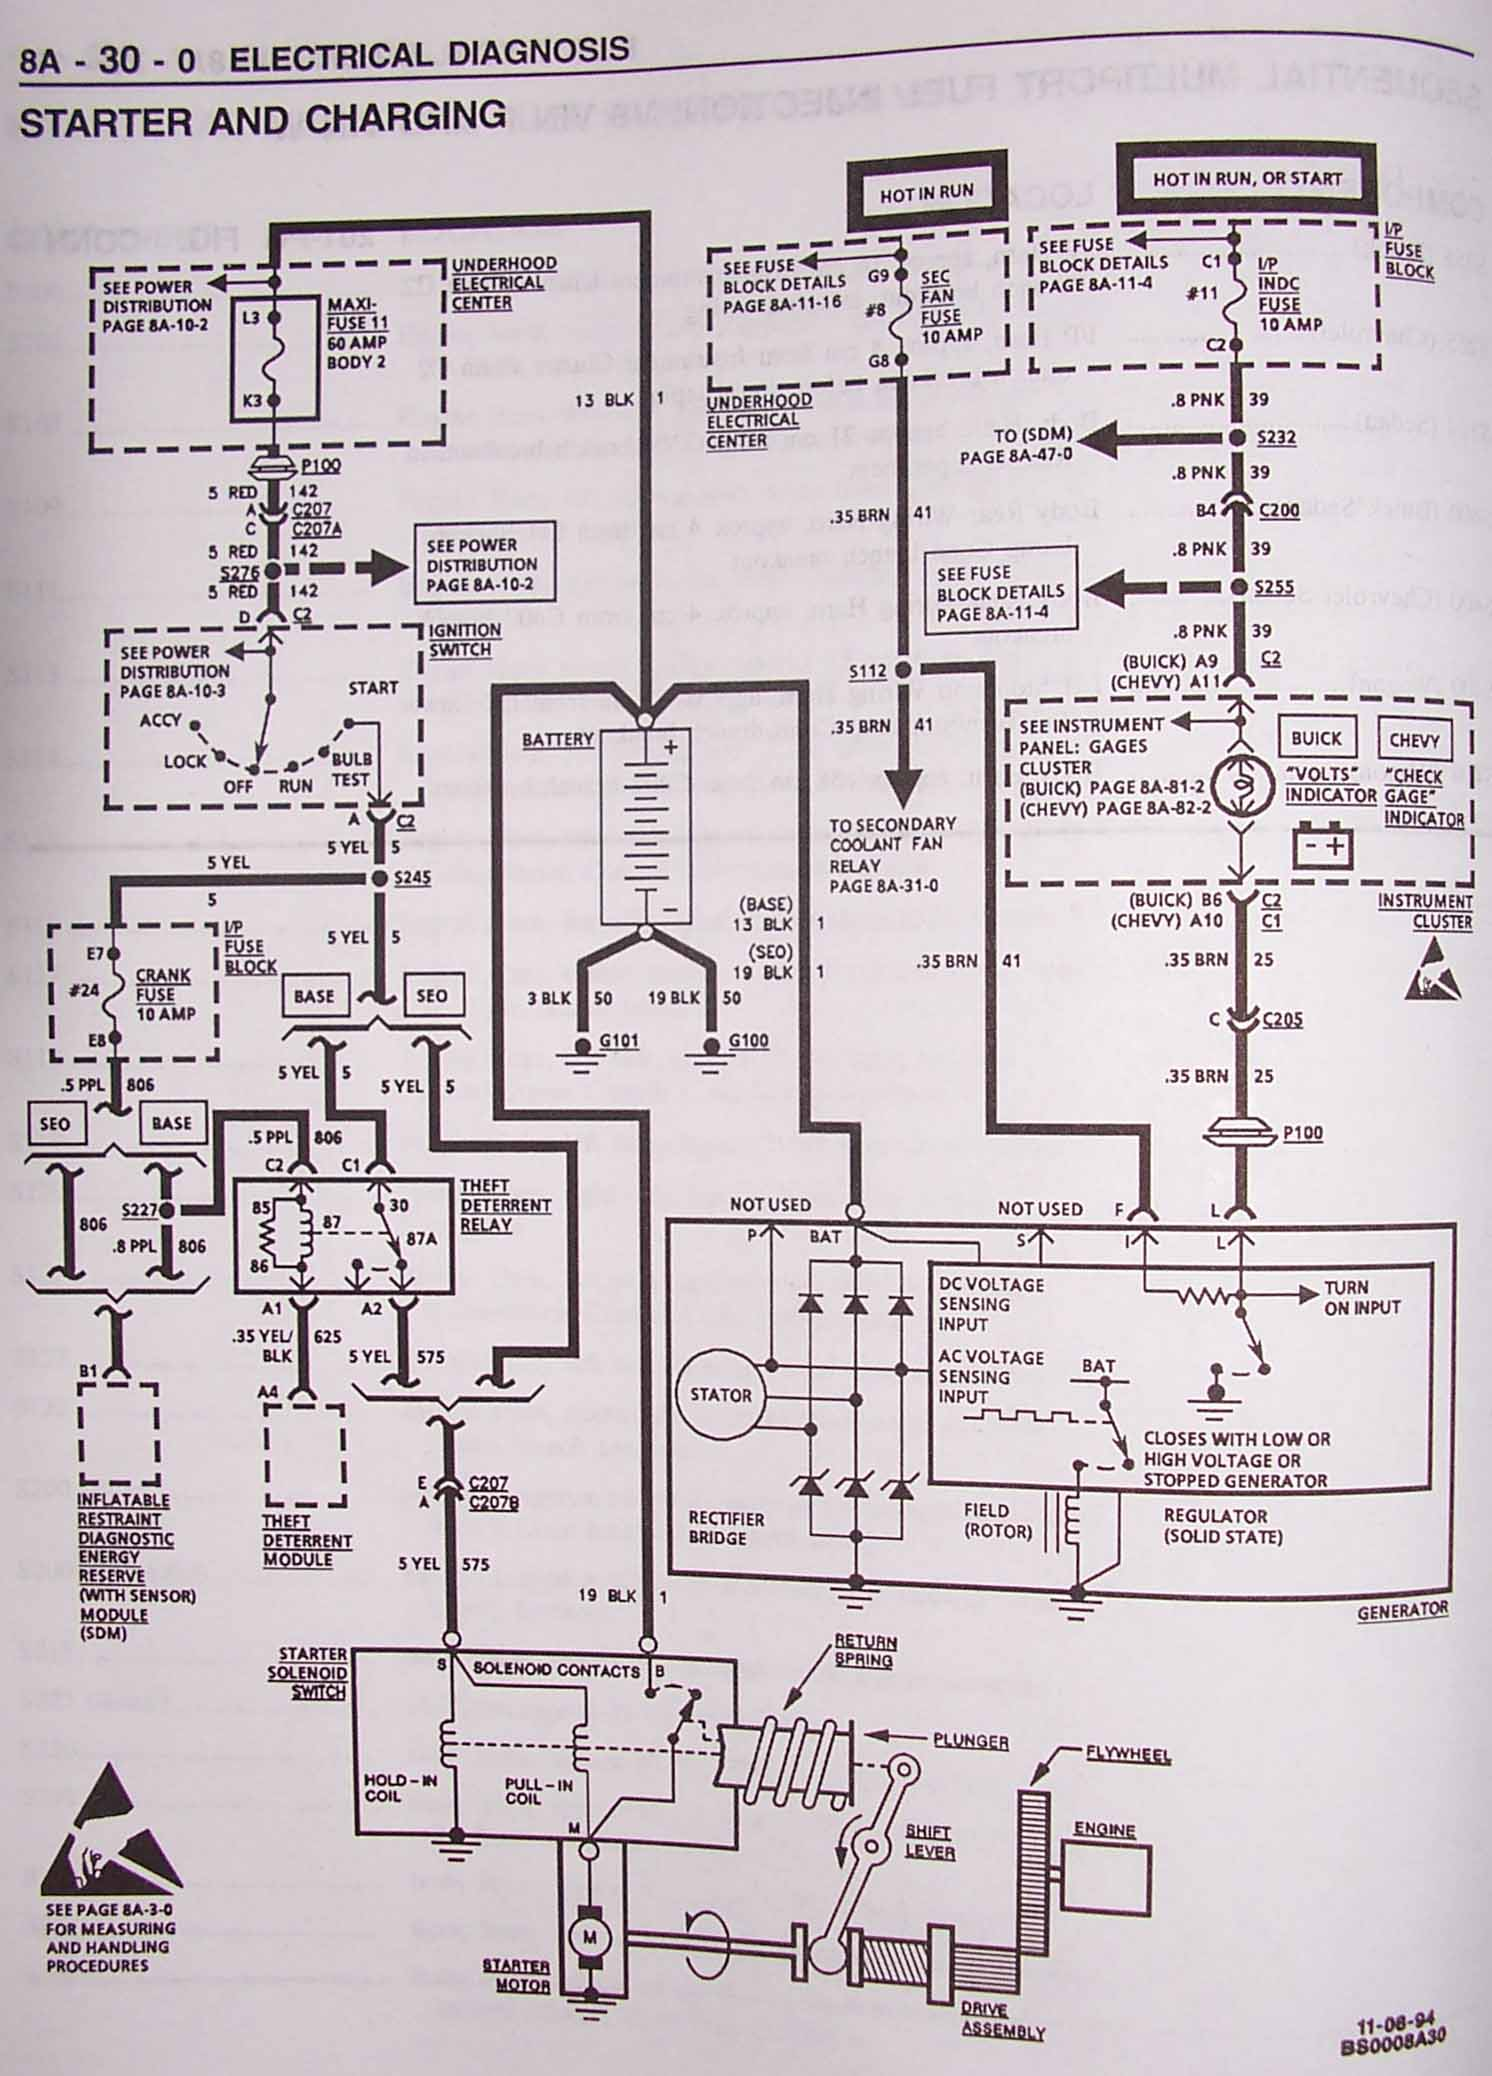 2011 Equinox Wiring Schematic 85 Camaro Dash Diagram Worksheet And 1986 Harness Factory Detailed Schematics Rh Jppastryarts Com 1991 Msd 6al